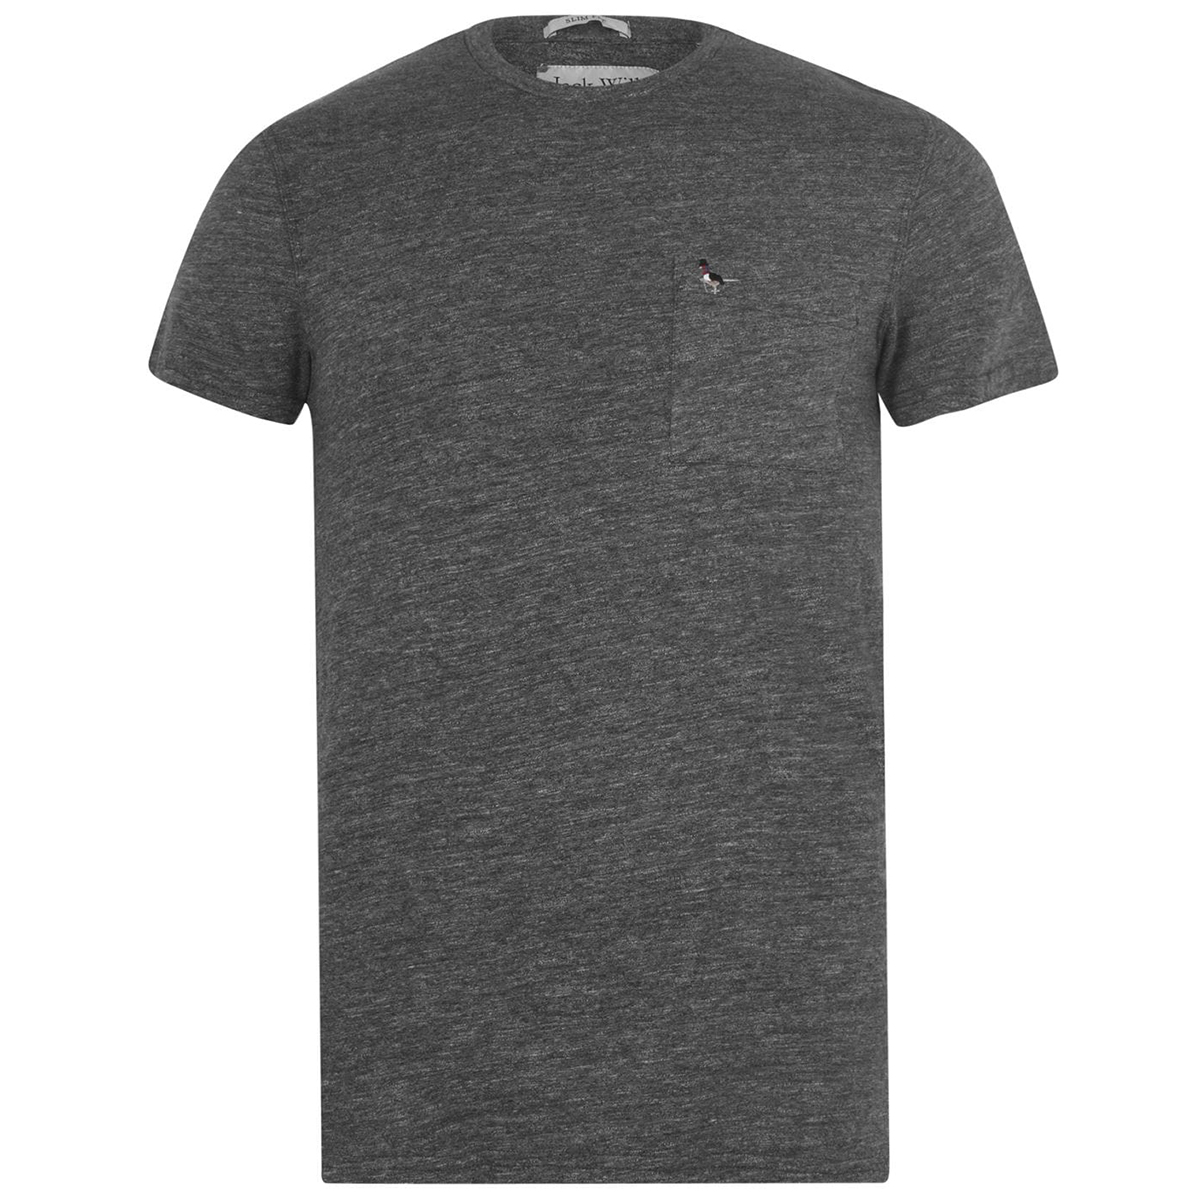 Jack Wills Men's Ayleford Pocket T-Shirt - Black, L